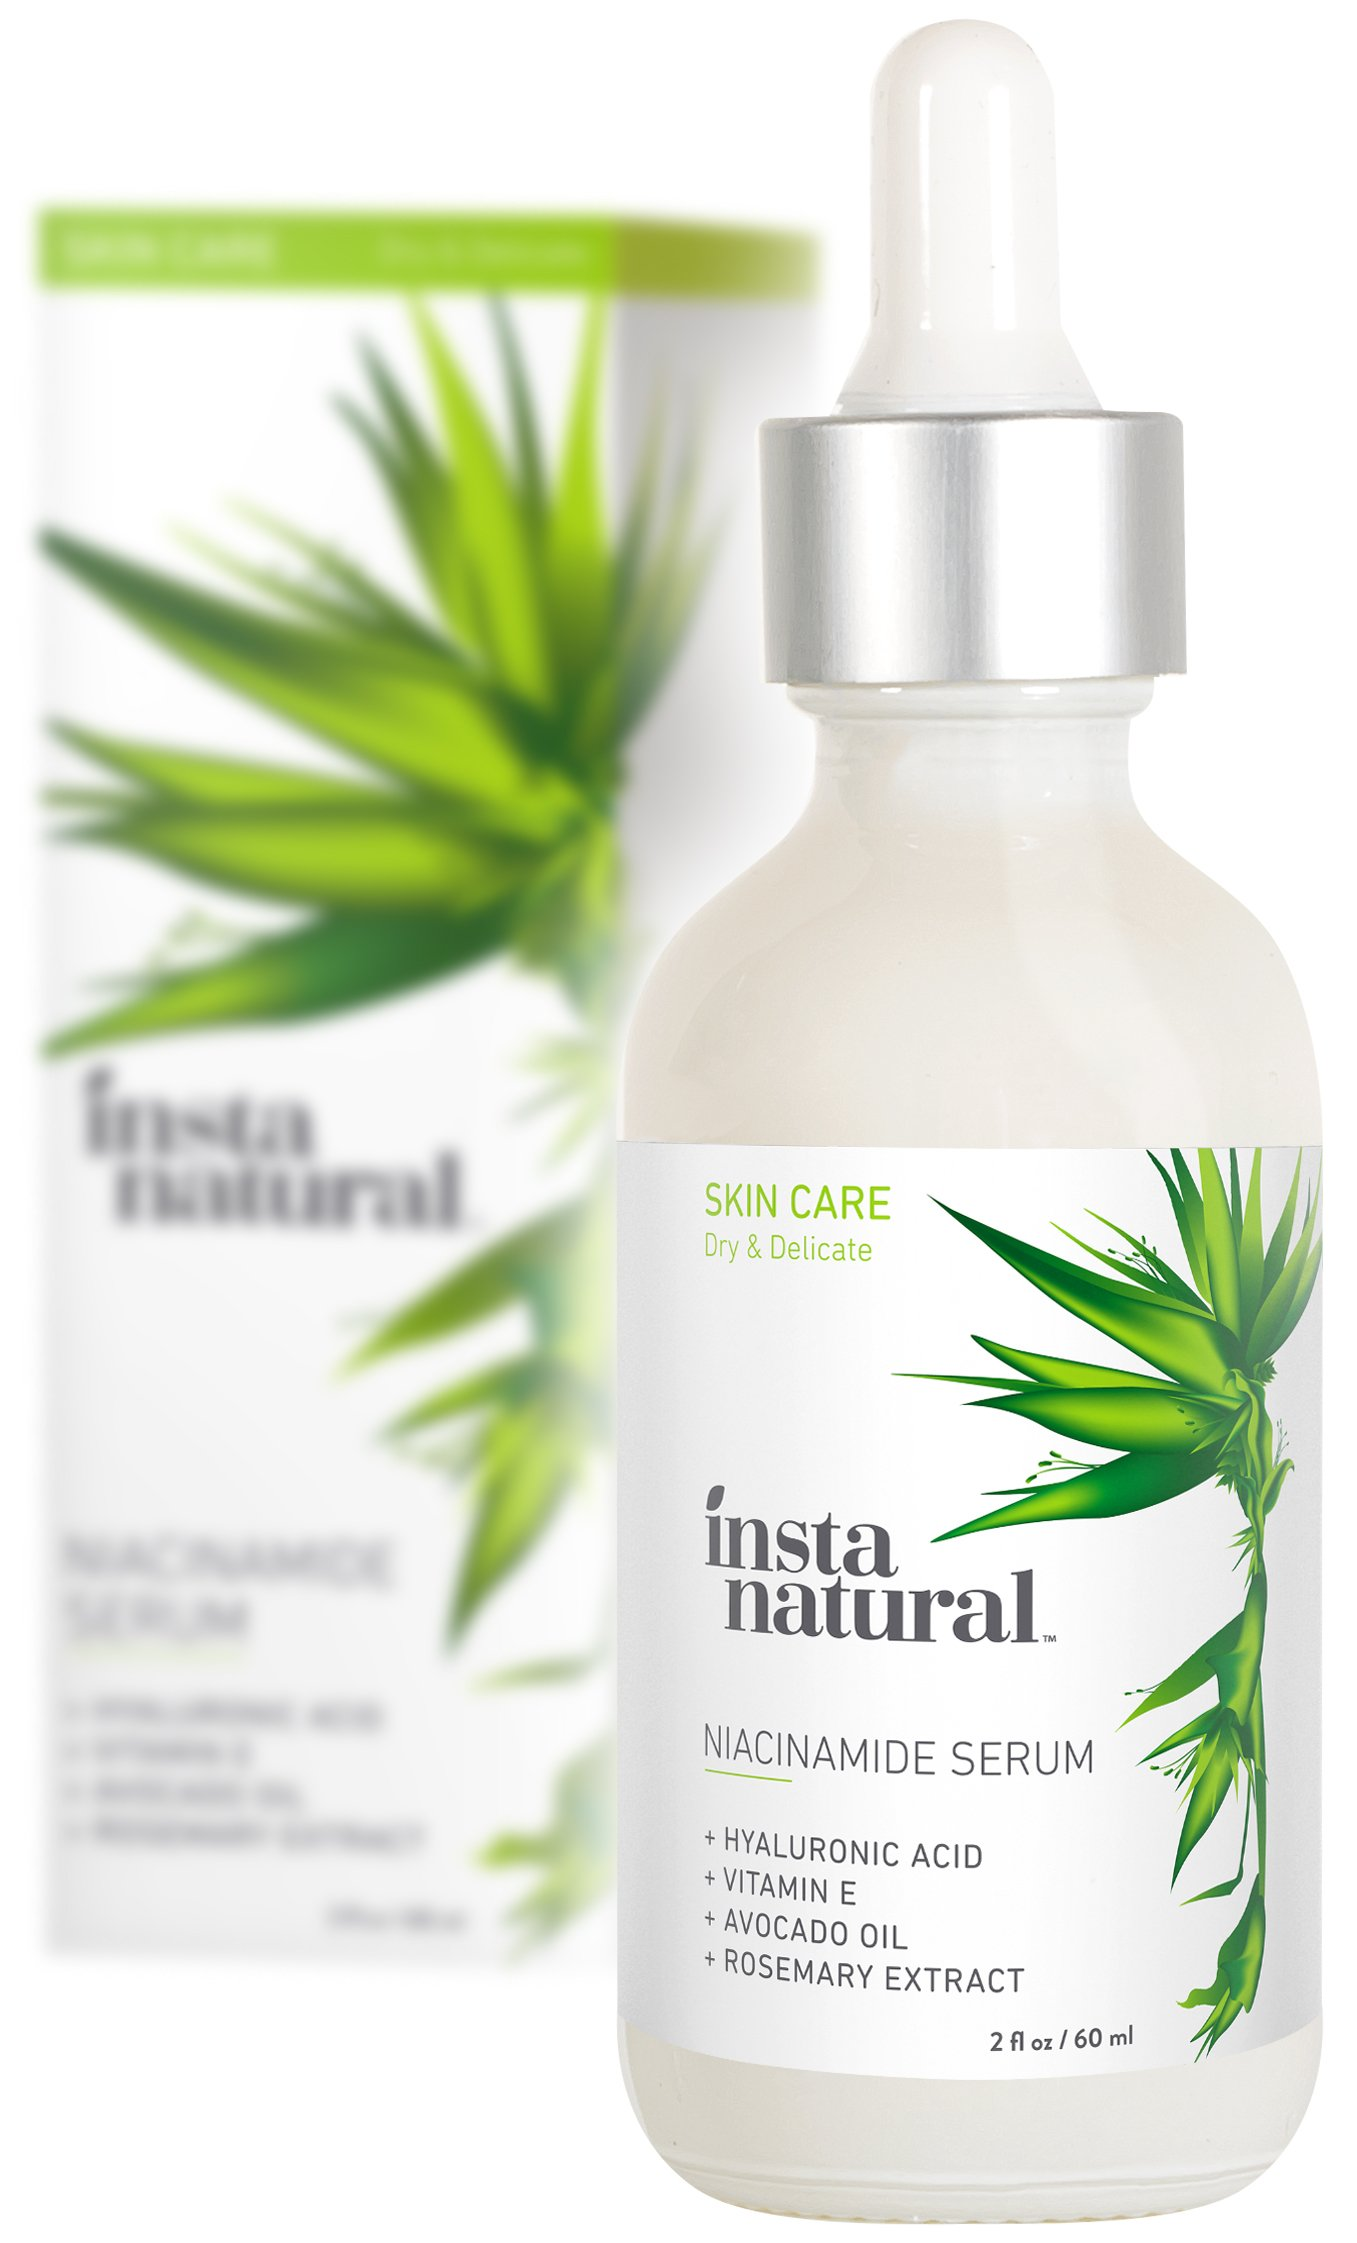 InstaNatural Niacinamide 5% Face Serum - Vitamin B3 Anti Aging Moisturizer for Skin - Diminishes Appearance of Acne, Breakouts, Wrinkles, Fine Lines, Dark Spots, Age Spots & Hyperpigmentation - 2 OZ